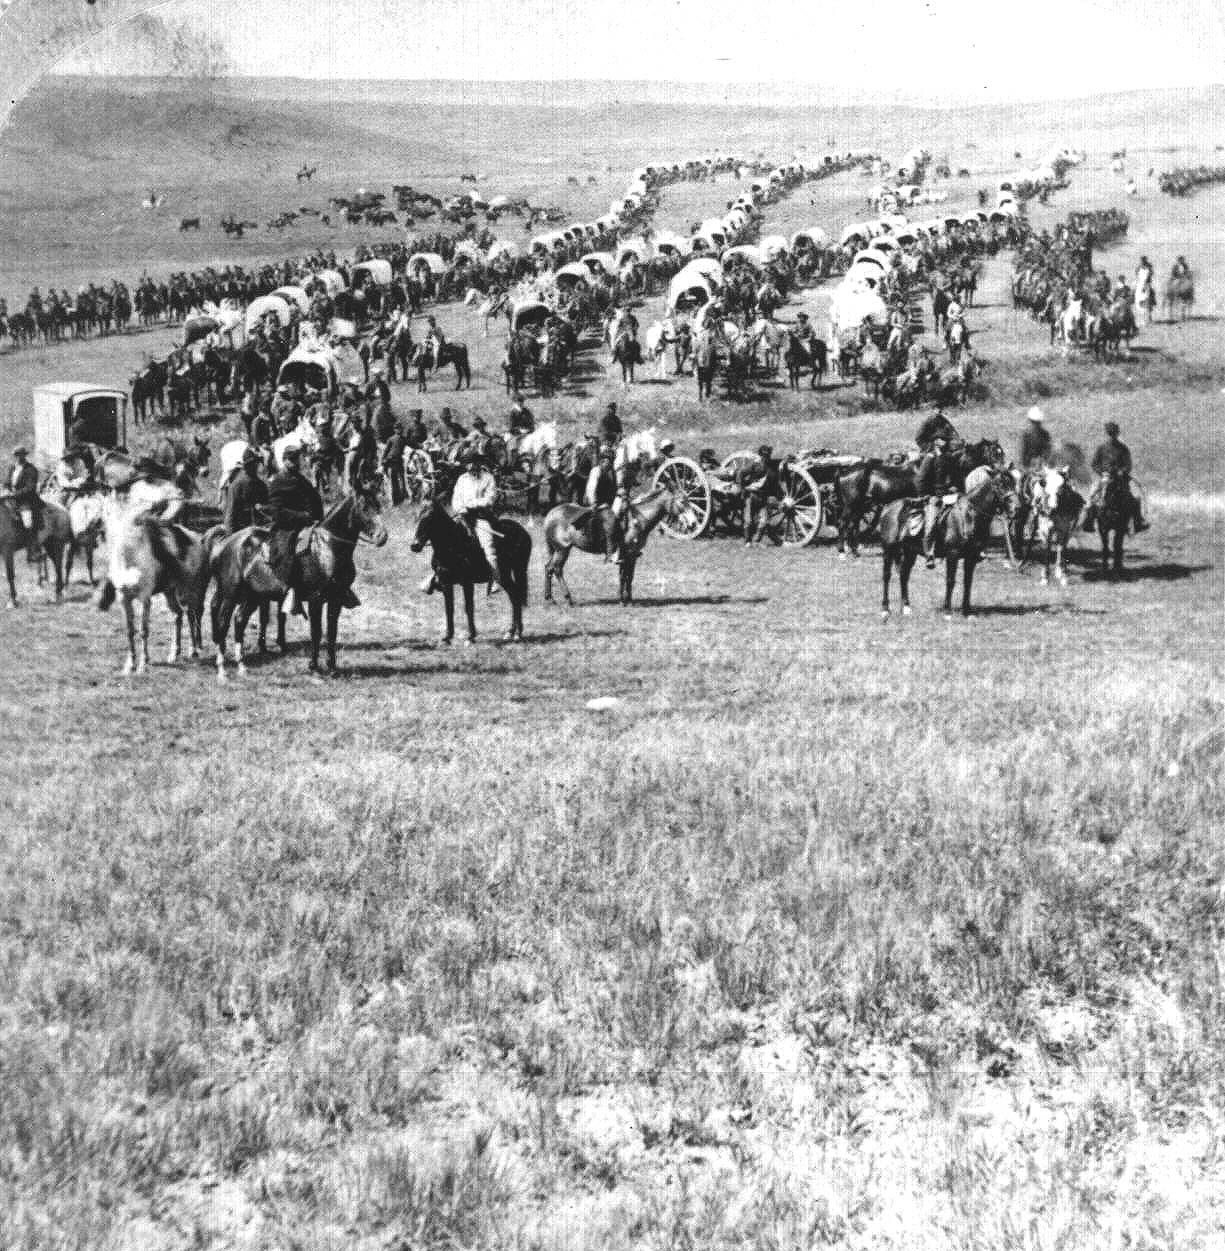 General Custer enters the Sioux' Black Hills of North Dakota and prospect for gold. His discovery of gold is designed to attract settlers. Thus, the U. S. breaks the Treaty of Fort Laramie, which forbade white men from entering the Sioux' sacred hills. General Custer's 1874 Black Hill's Expedition Force.